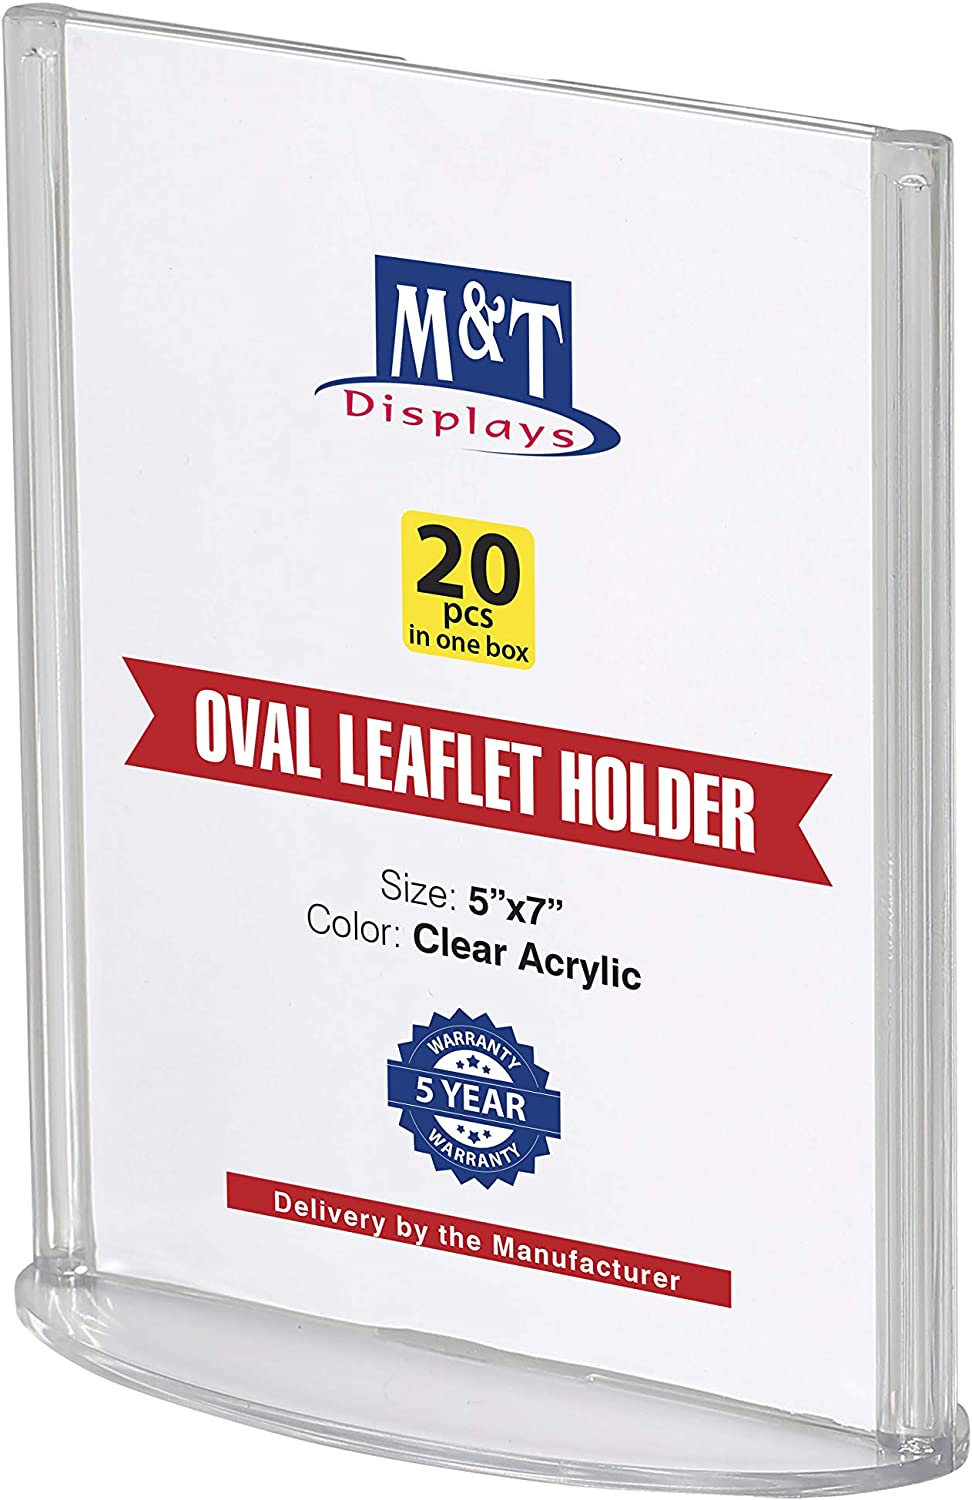 Oval Leaflet Advertising Display Holder 激安 激安特価 爆買い送料無料 送料無料 Acrylic Table Sig 4